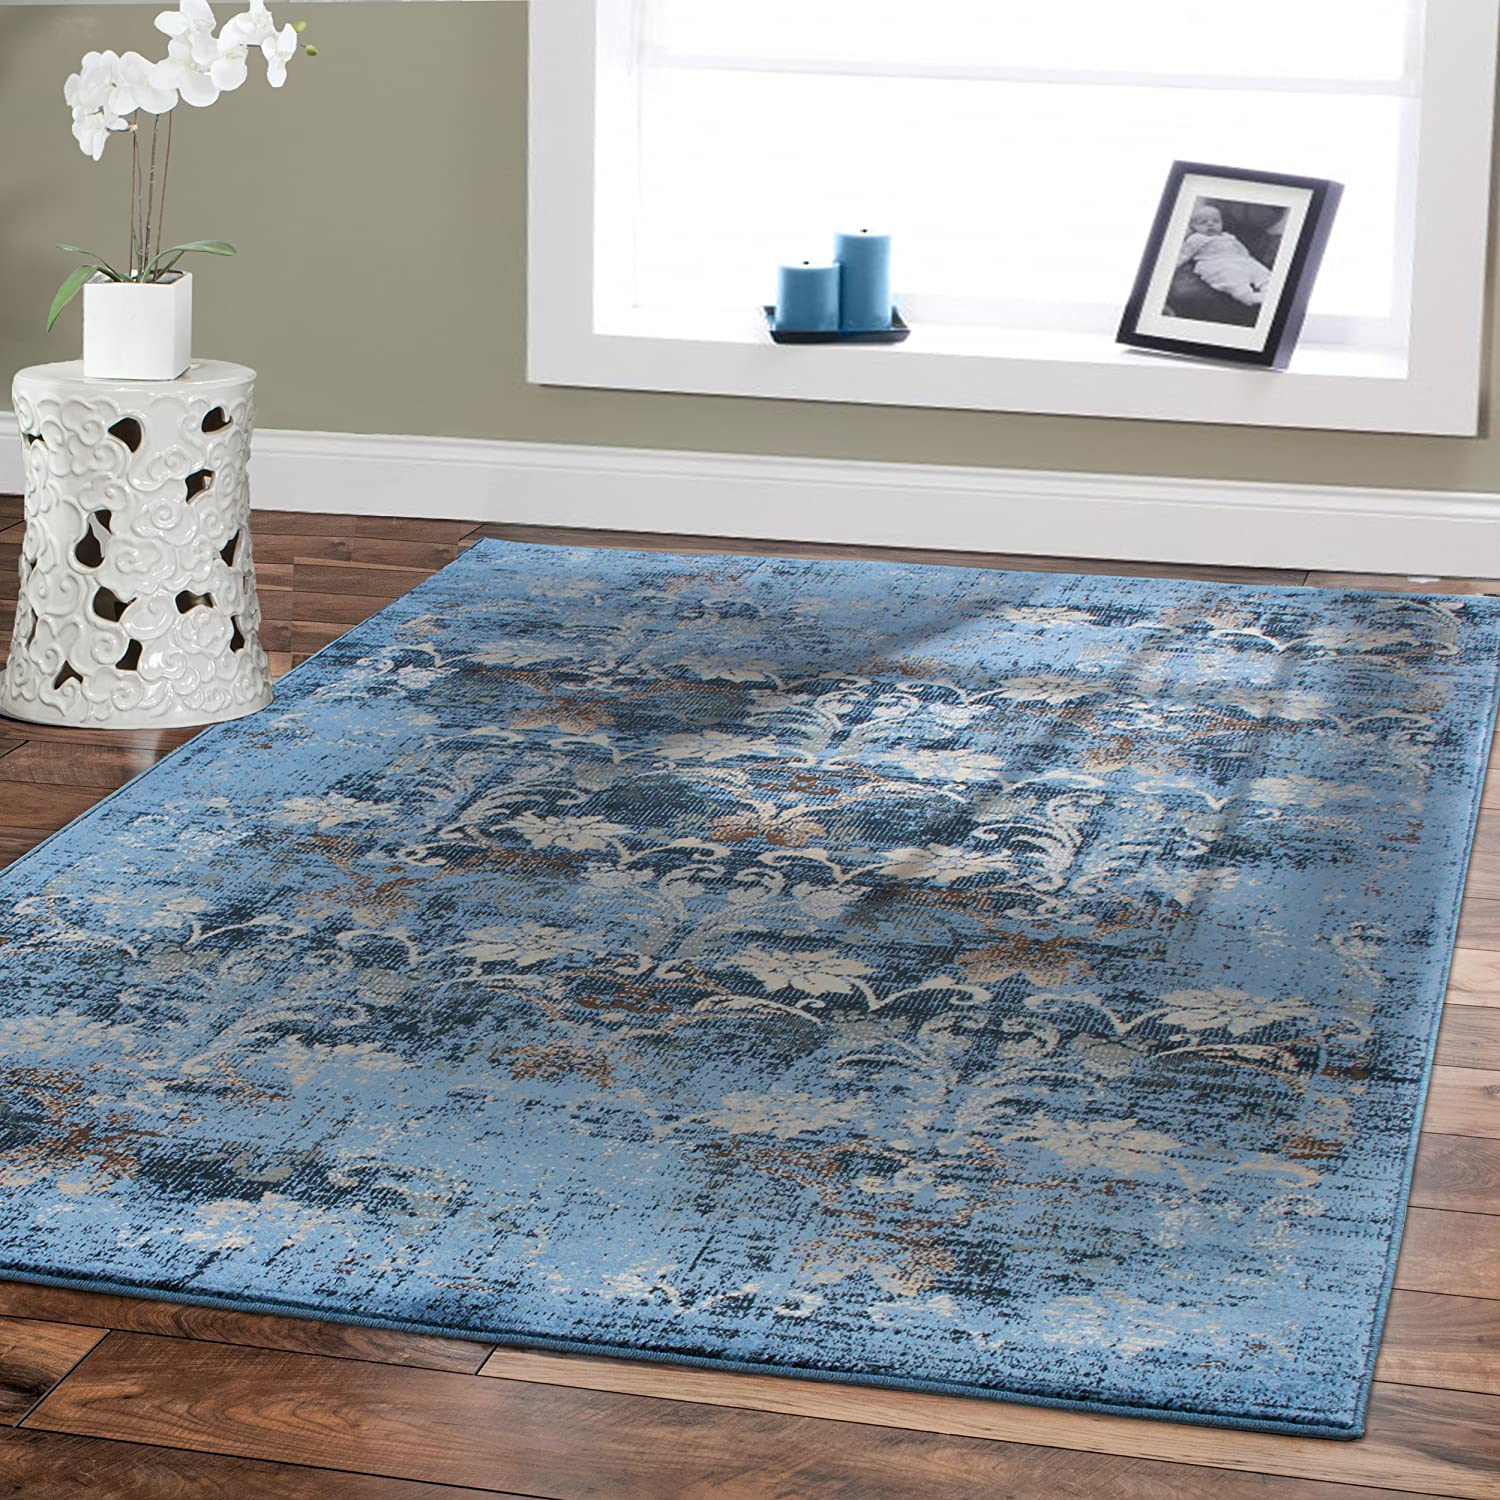 Fabulous Amazon.com: Premium Soft 8x11 Modern Rugs For Dining Room Blue  NM94